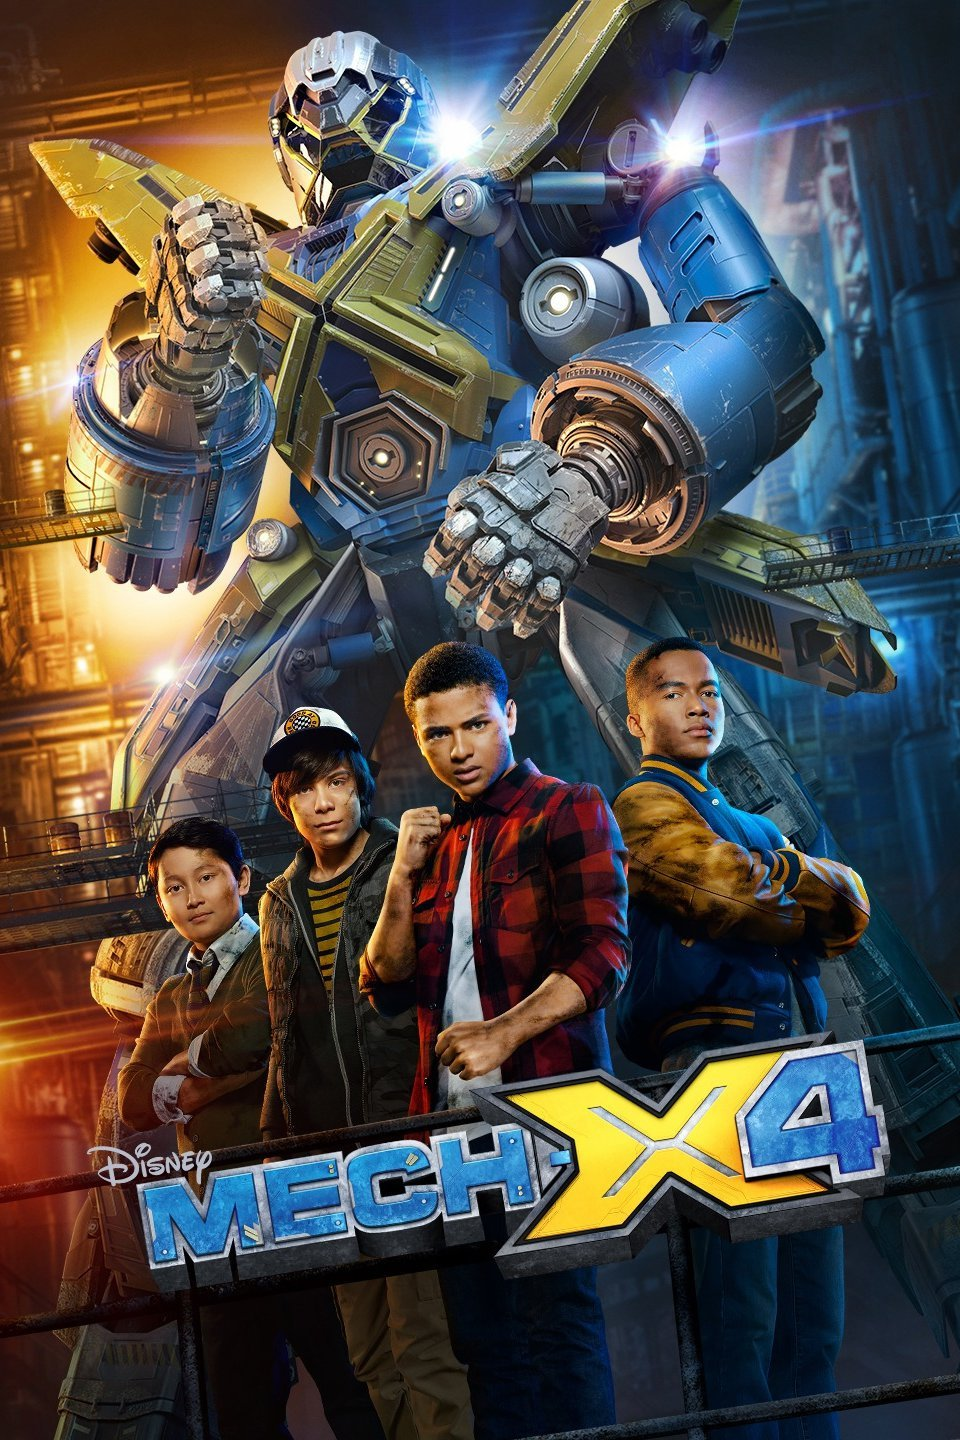 Mech-X4 Season 1 Complete Download 720p WEBRip